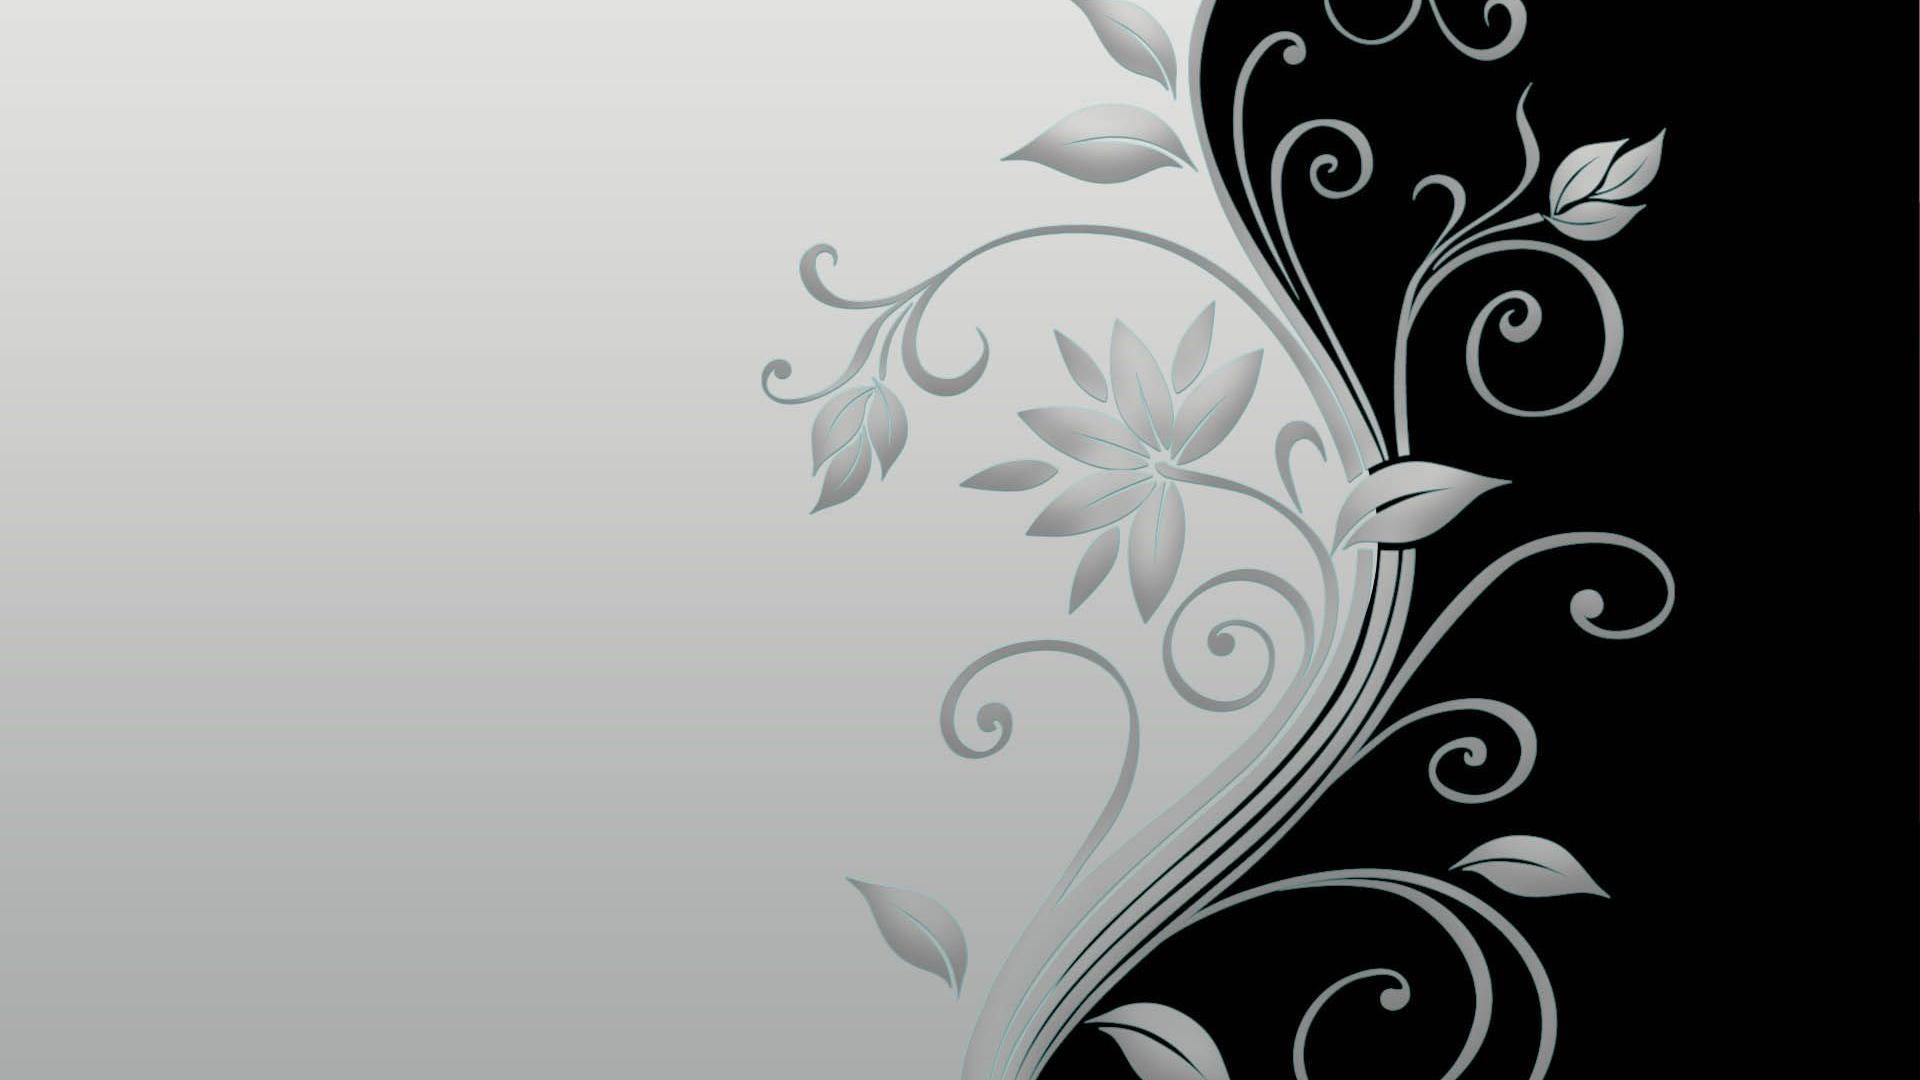 Hd wallpaper white background - Flower Black And White Hd Wallpaper Vector Flower Black And White